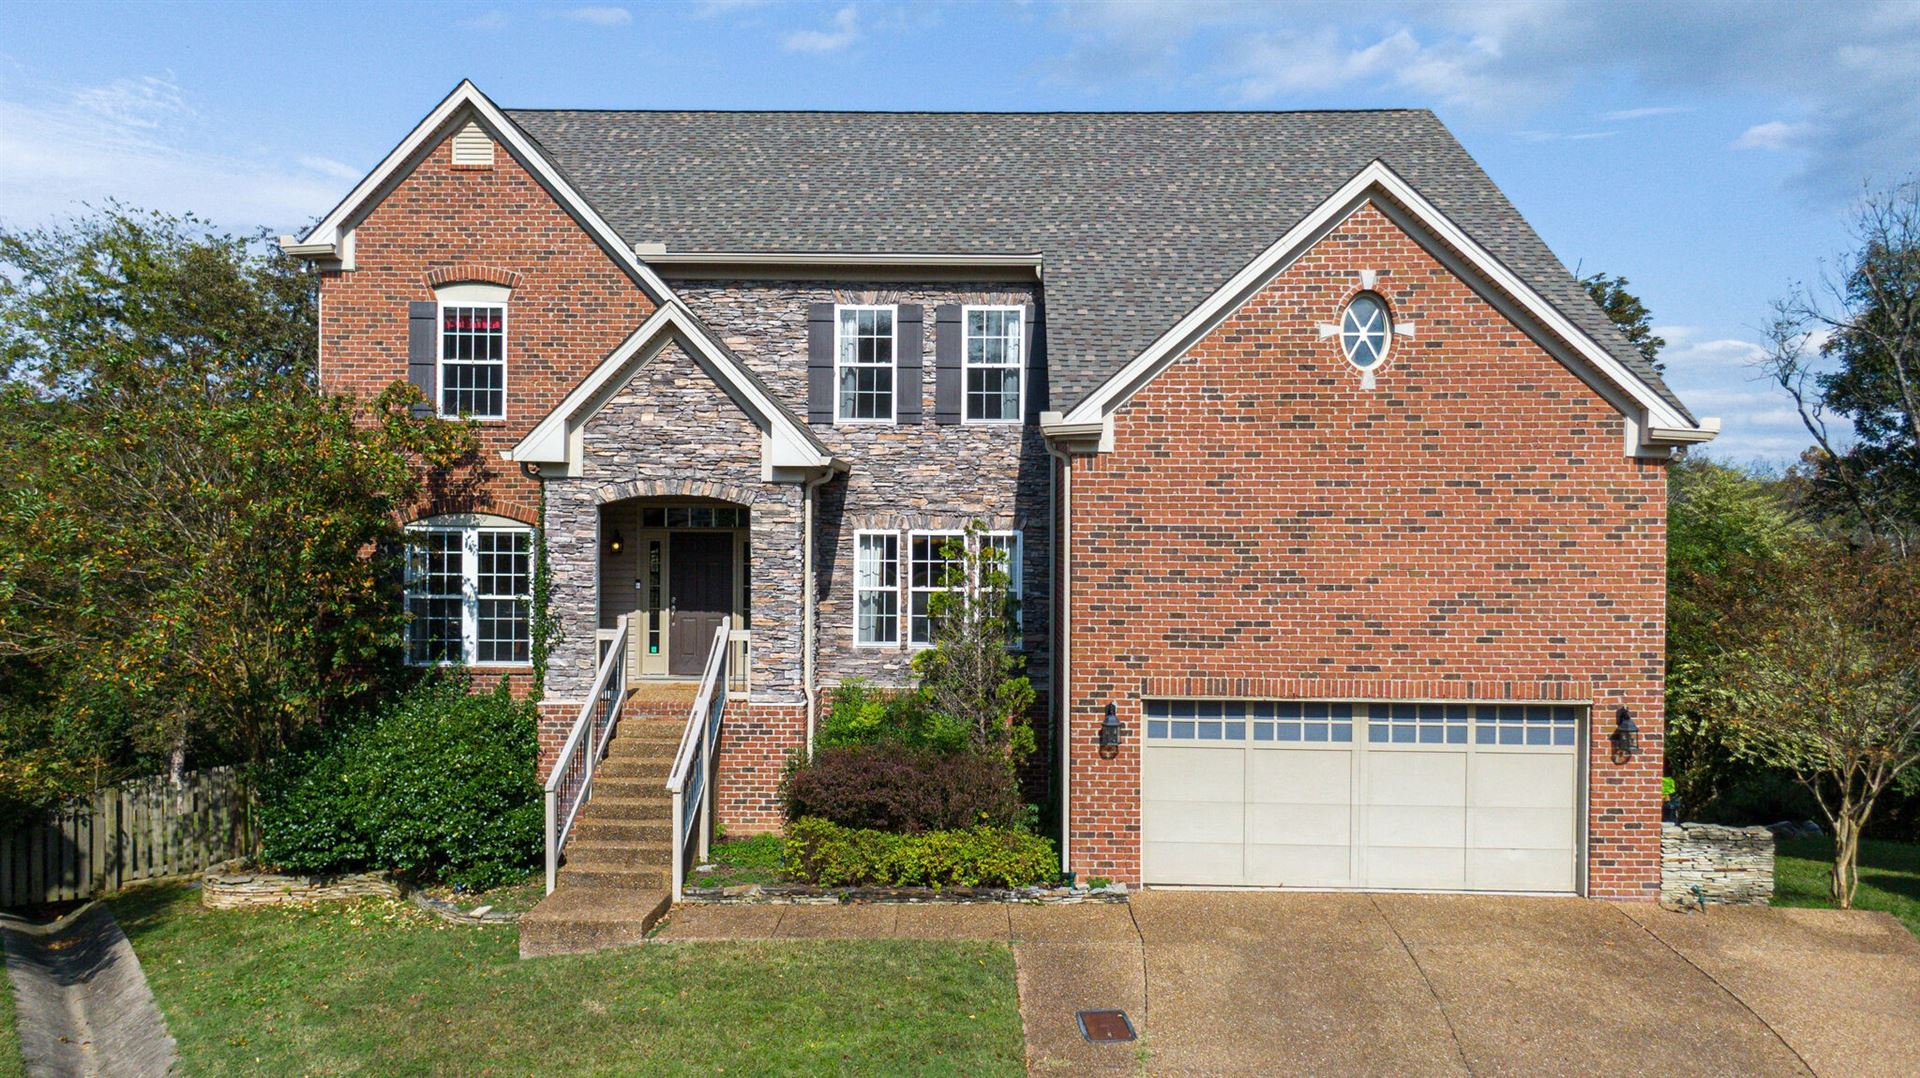 1220 Beautiful Valley Ct, Nashville, TN 37221 - MLS#: 2199478